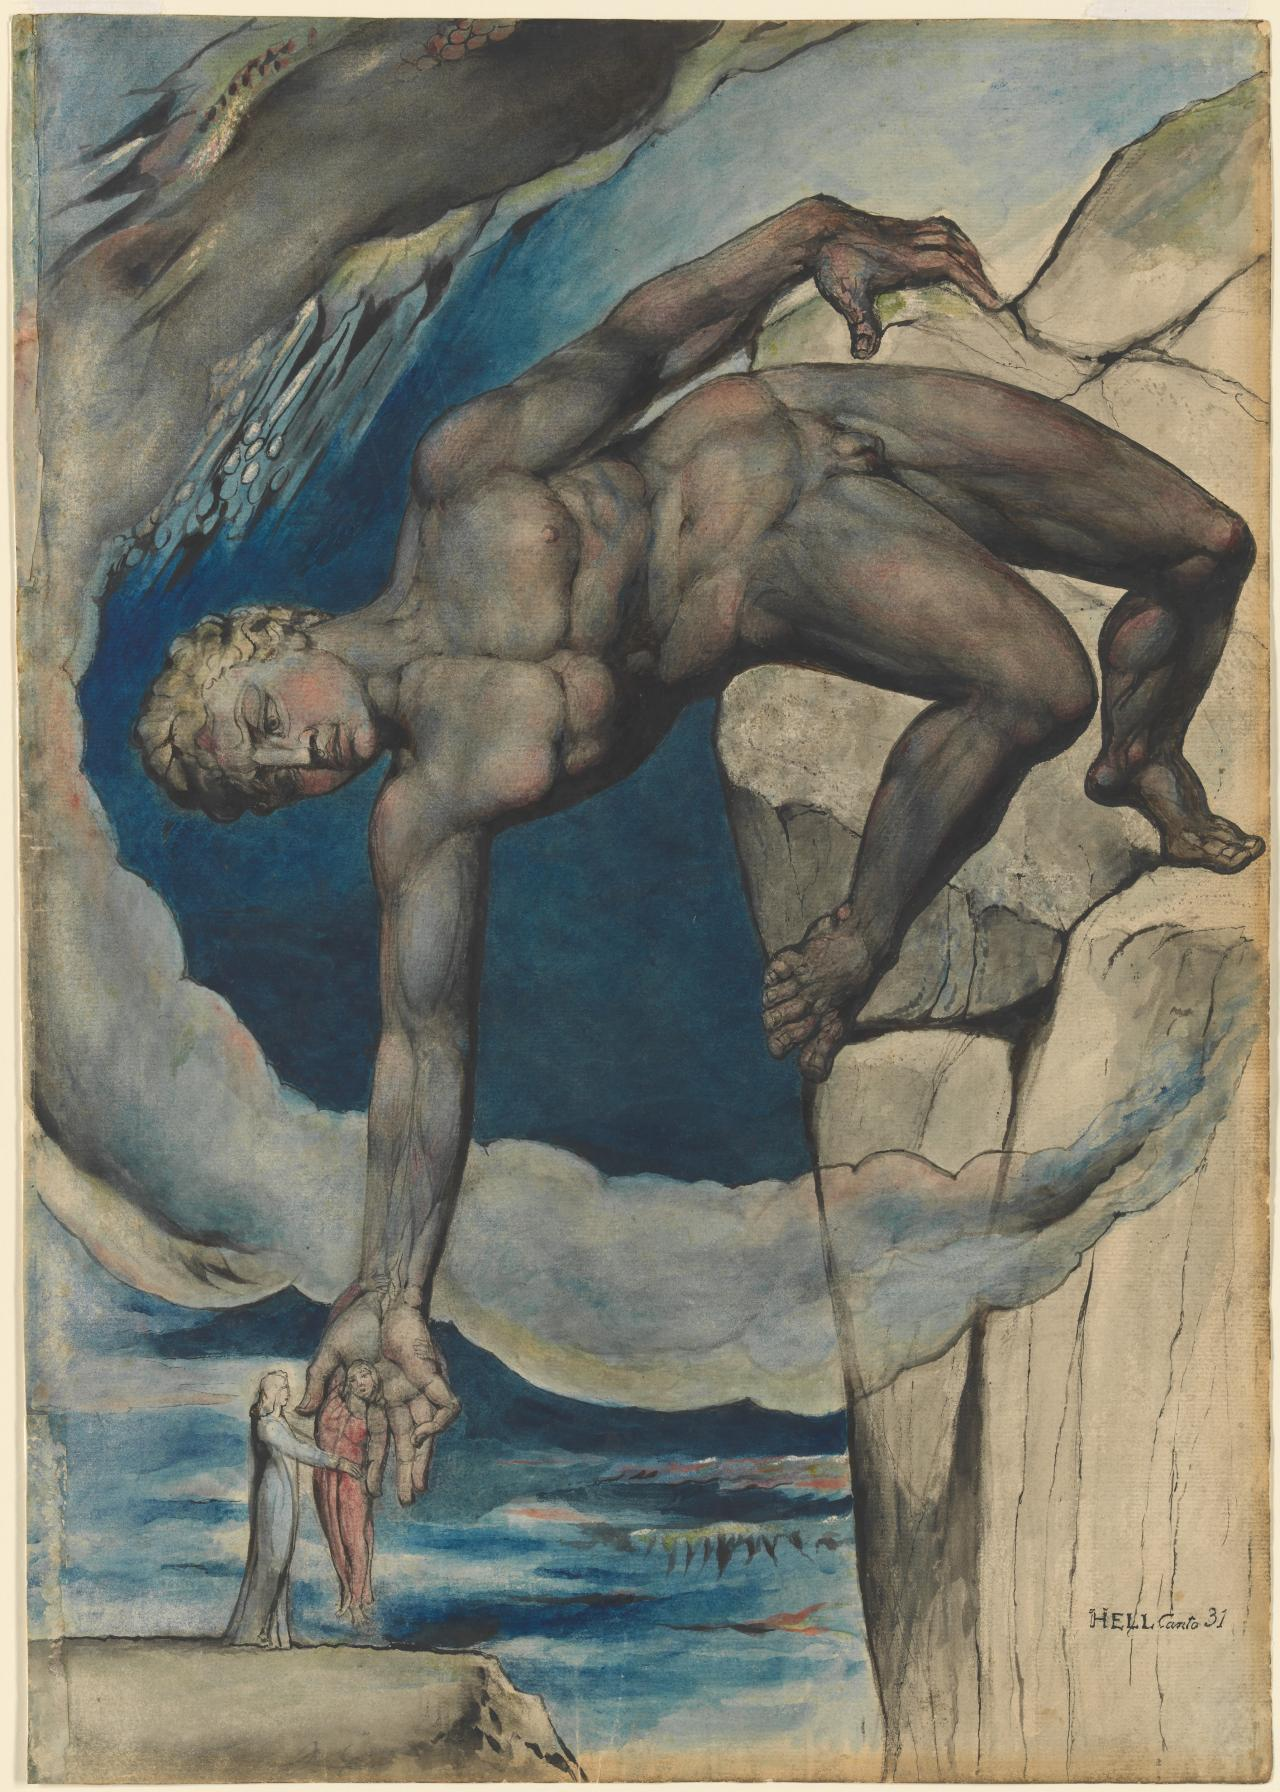 William BLAKE Antaeus setting down Dante and Virgil in the Last Circle of Hell (1824-1827)